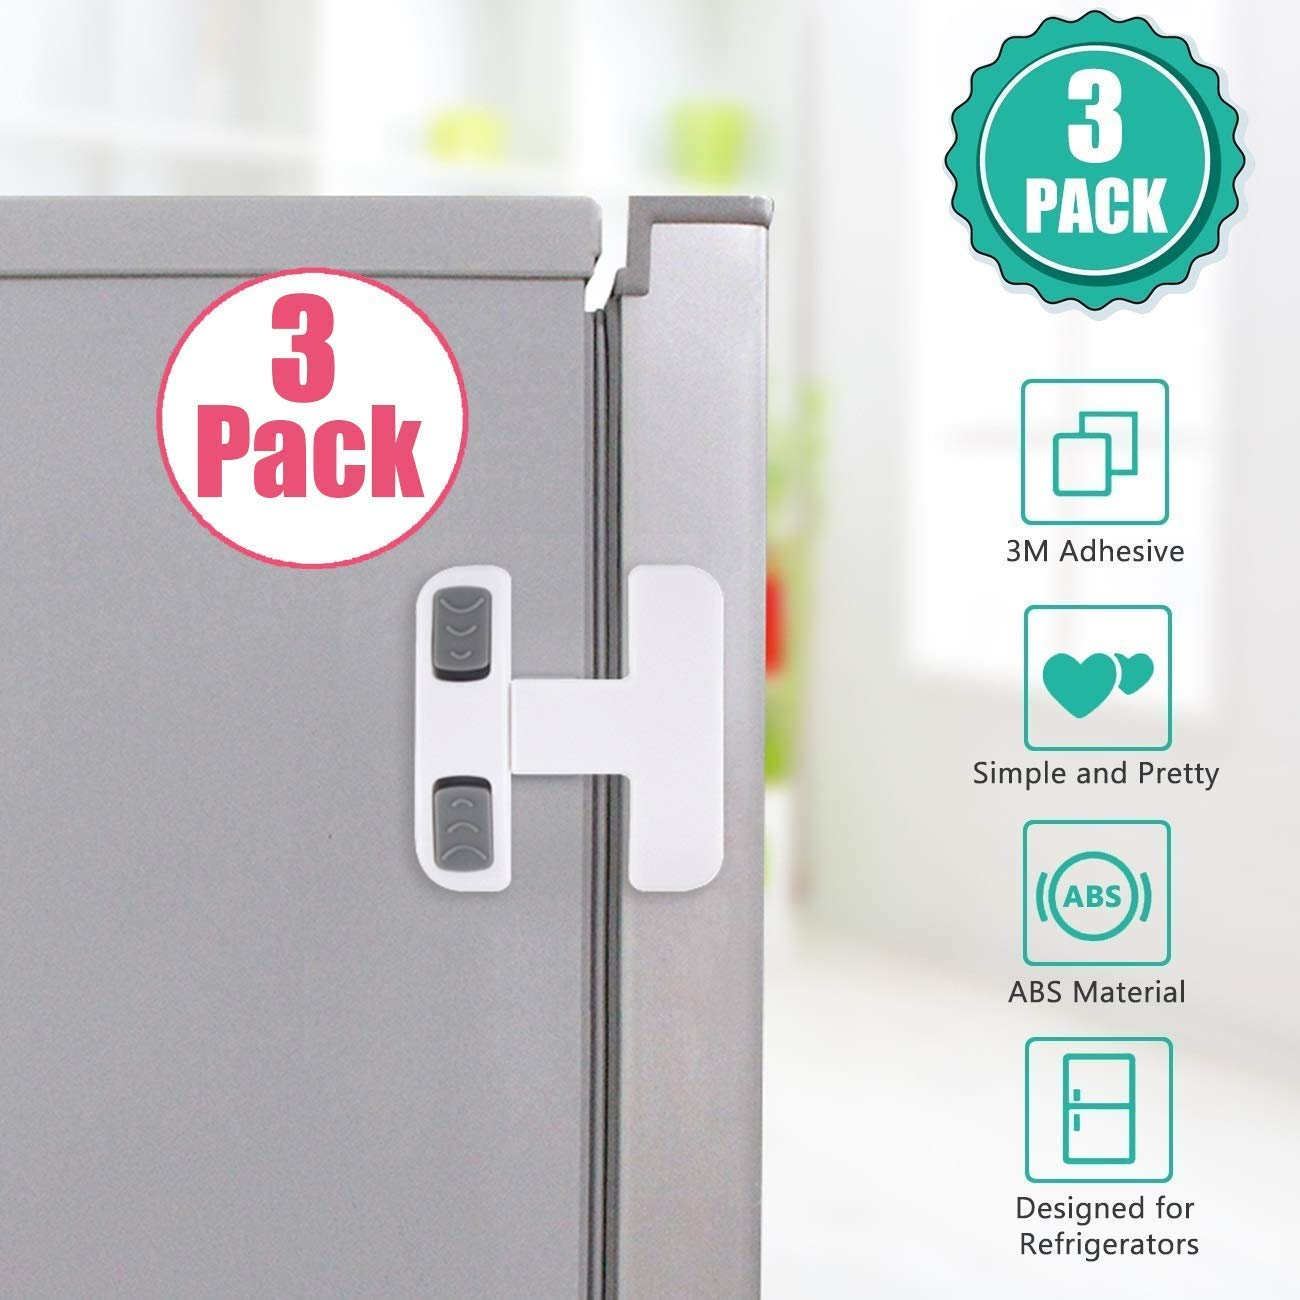 Fridge Door Lock for Kitchen Safety Guard,Refrigerator Freezer Door Lock for Baby Child Toddler Pet Proof Safety Lock Easy to Install and Use 3M Adhesive No Tools Need or Drill (White,3 Pack)